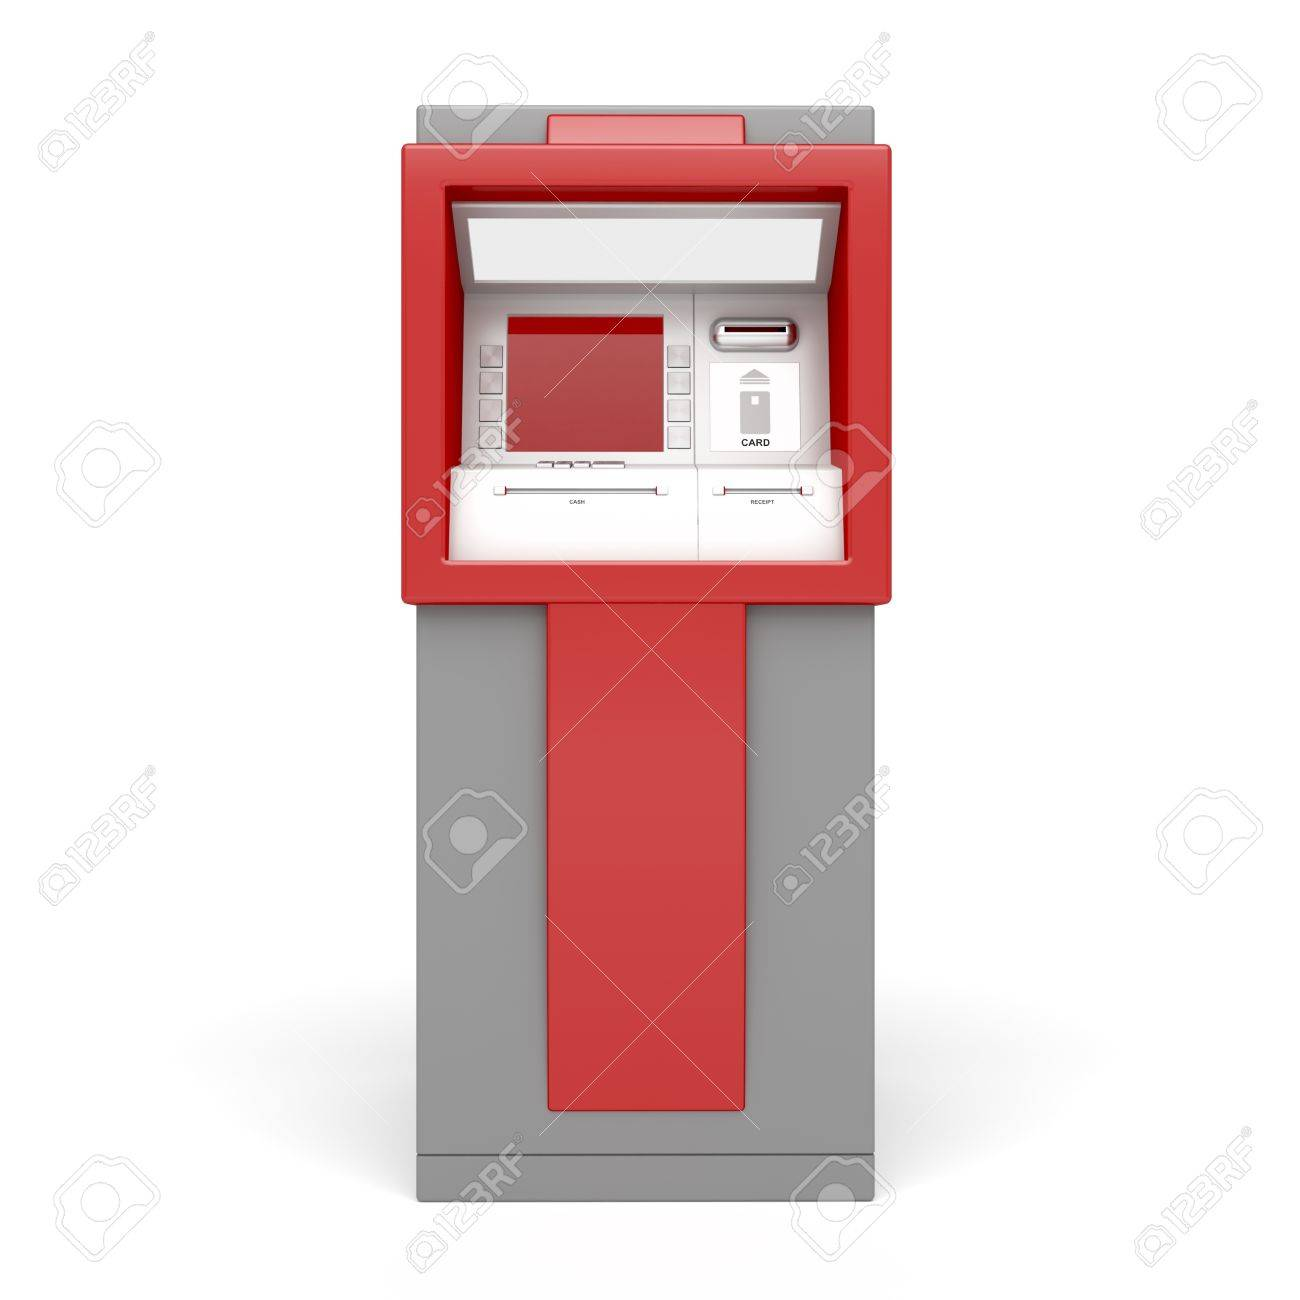 3d illustration of ATM on white background. Front view. Stock Photo - 11304800